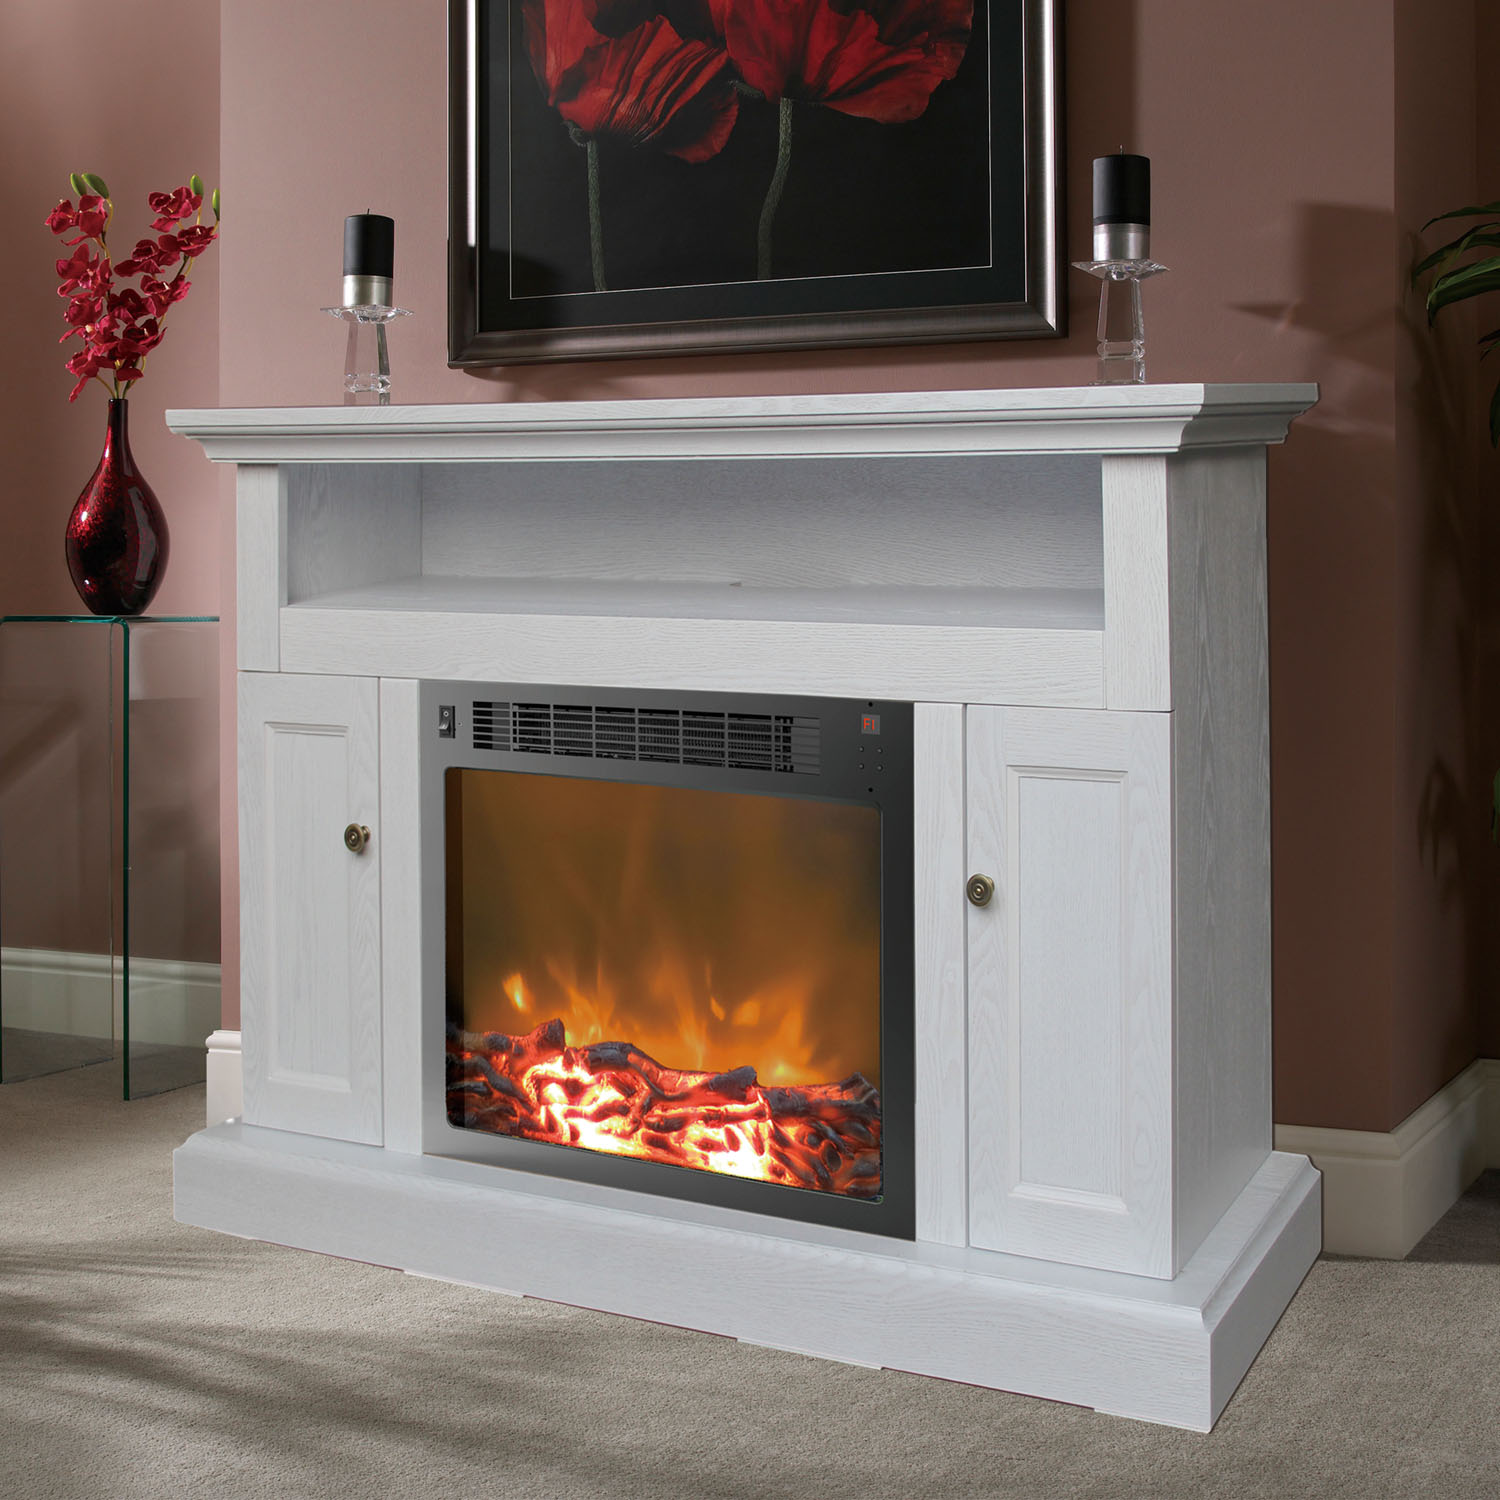 Fireplace Mantel White Sorrento Fireplace Mantel With Electronic Fireplace Insert